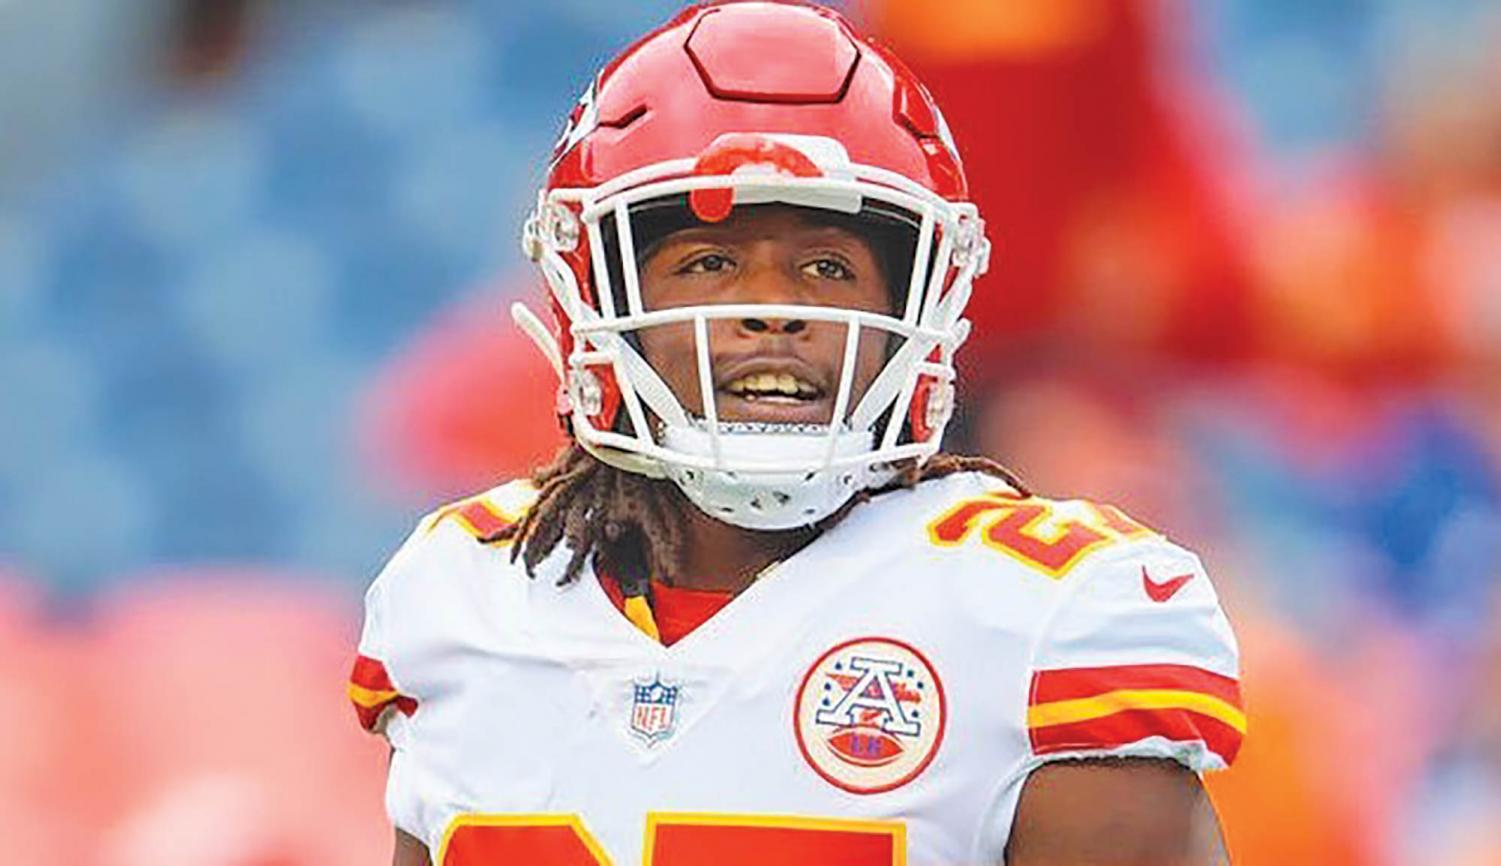 The Cleveland Browns are have given Kareem Hunt a controversial second chance to play in the NFL.